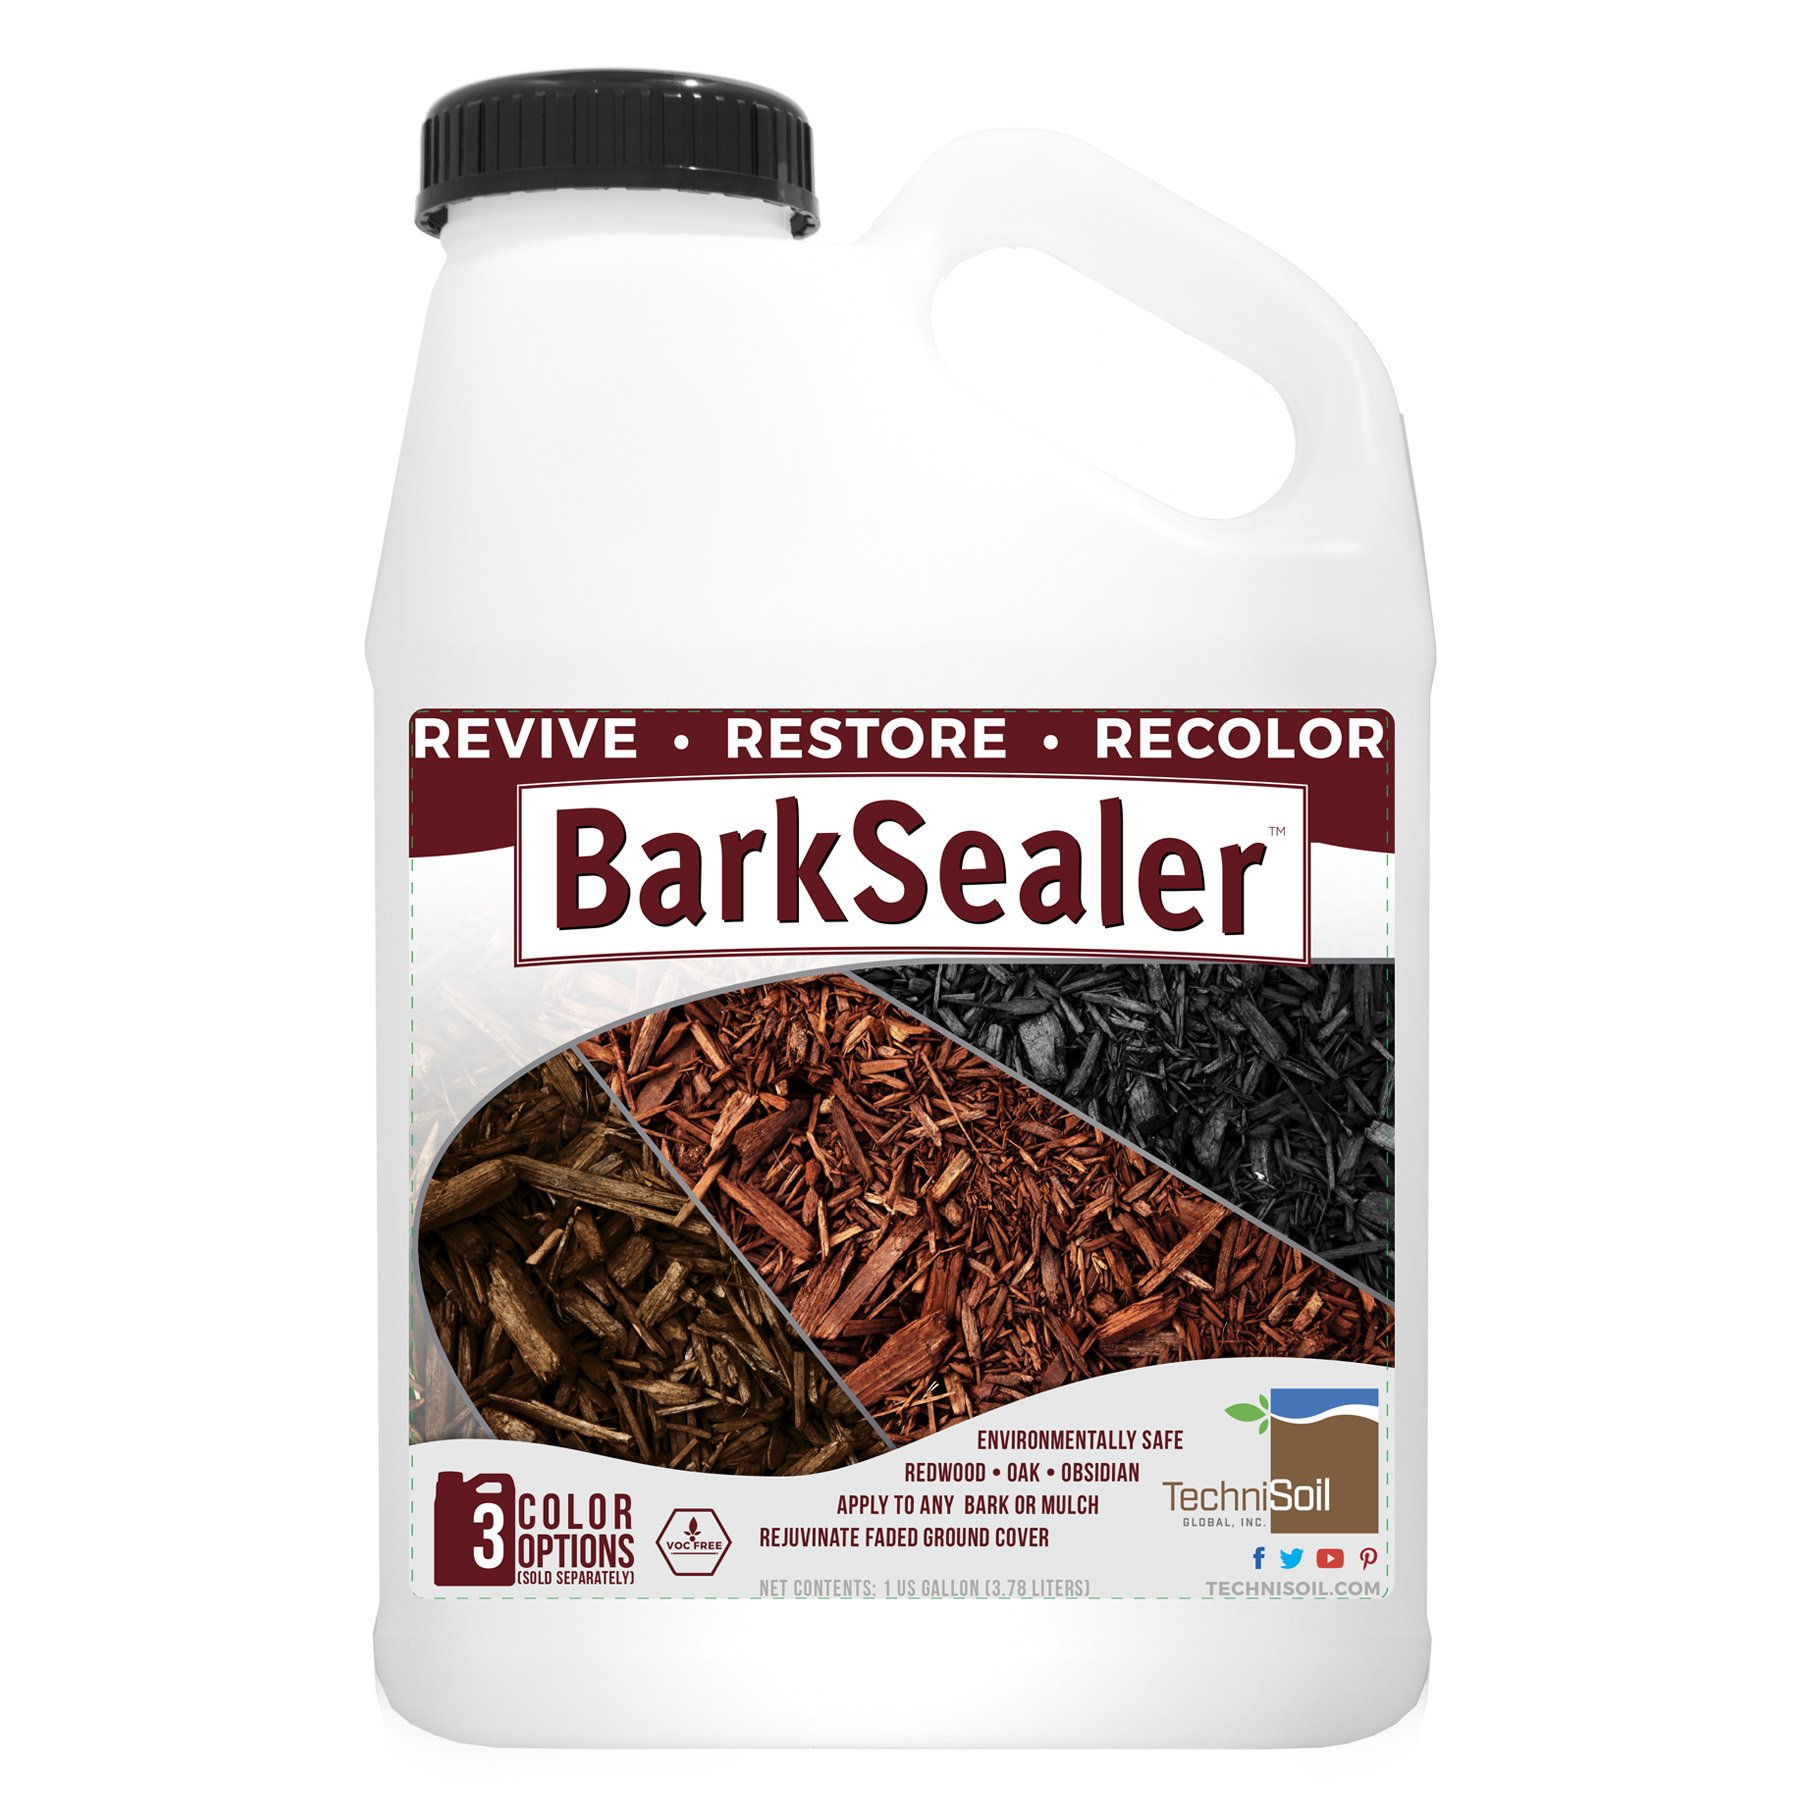 BarkSealer Mulch Color Enhancement & Protection (1-gallon bottle) by TechniSoil